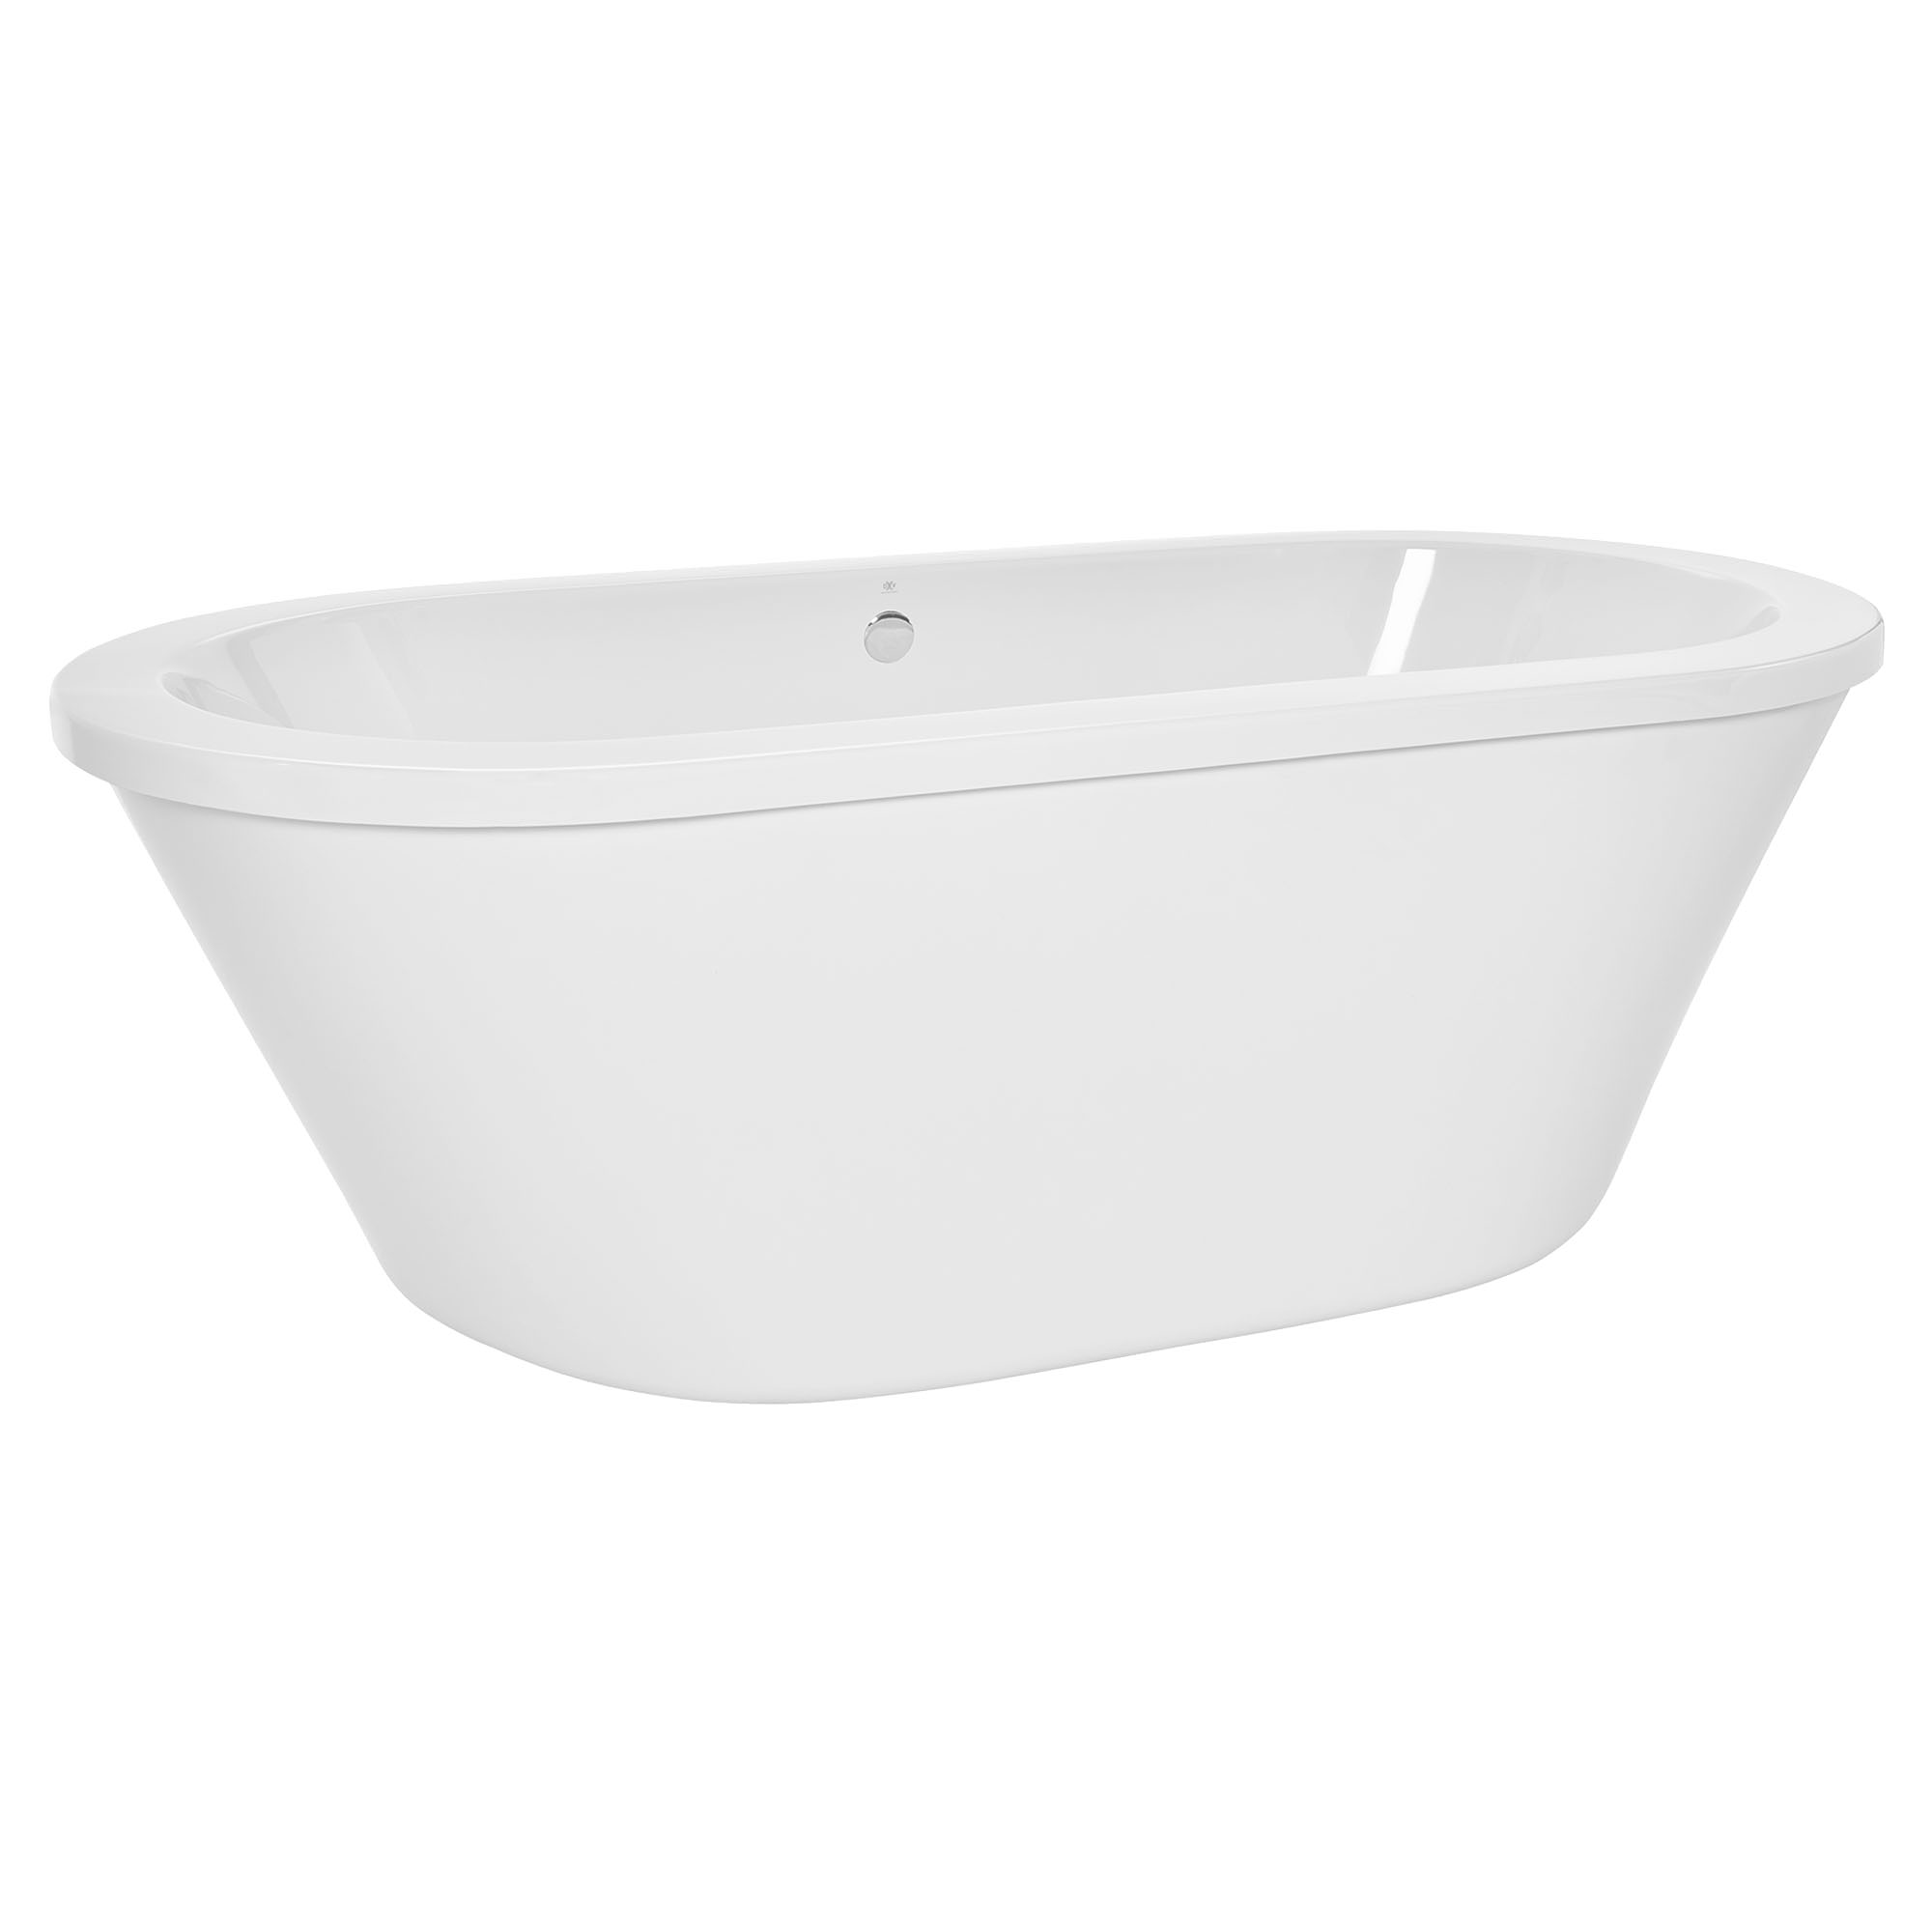 apron standard american inch integral bathroom freestanding tubs whirlpools bathtub bathtubs cambridge by tub category soaking